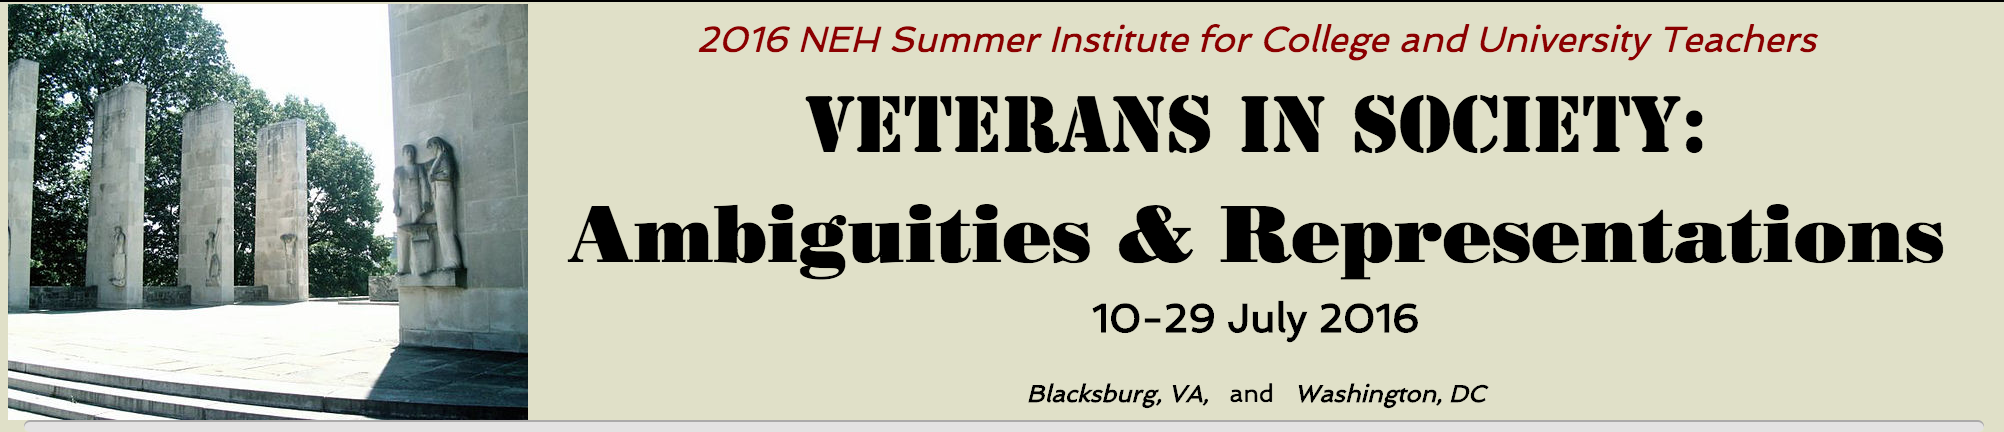 Masthead for the Veterans in Society Summer Institute website